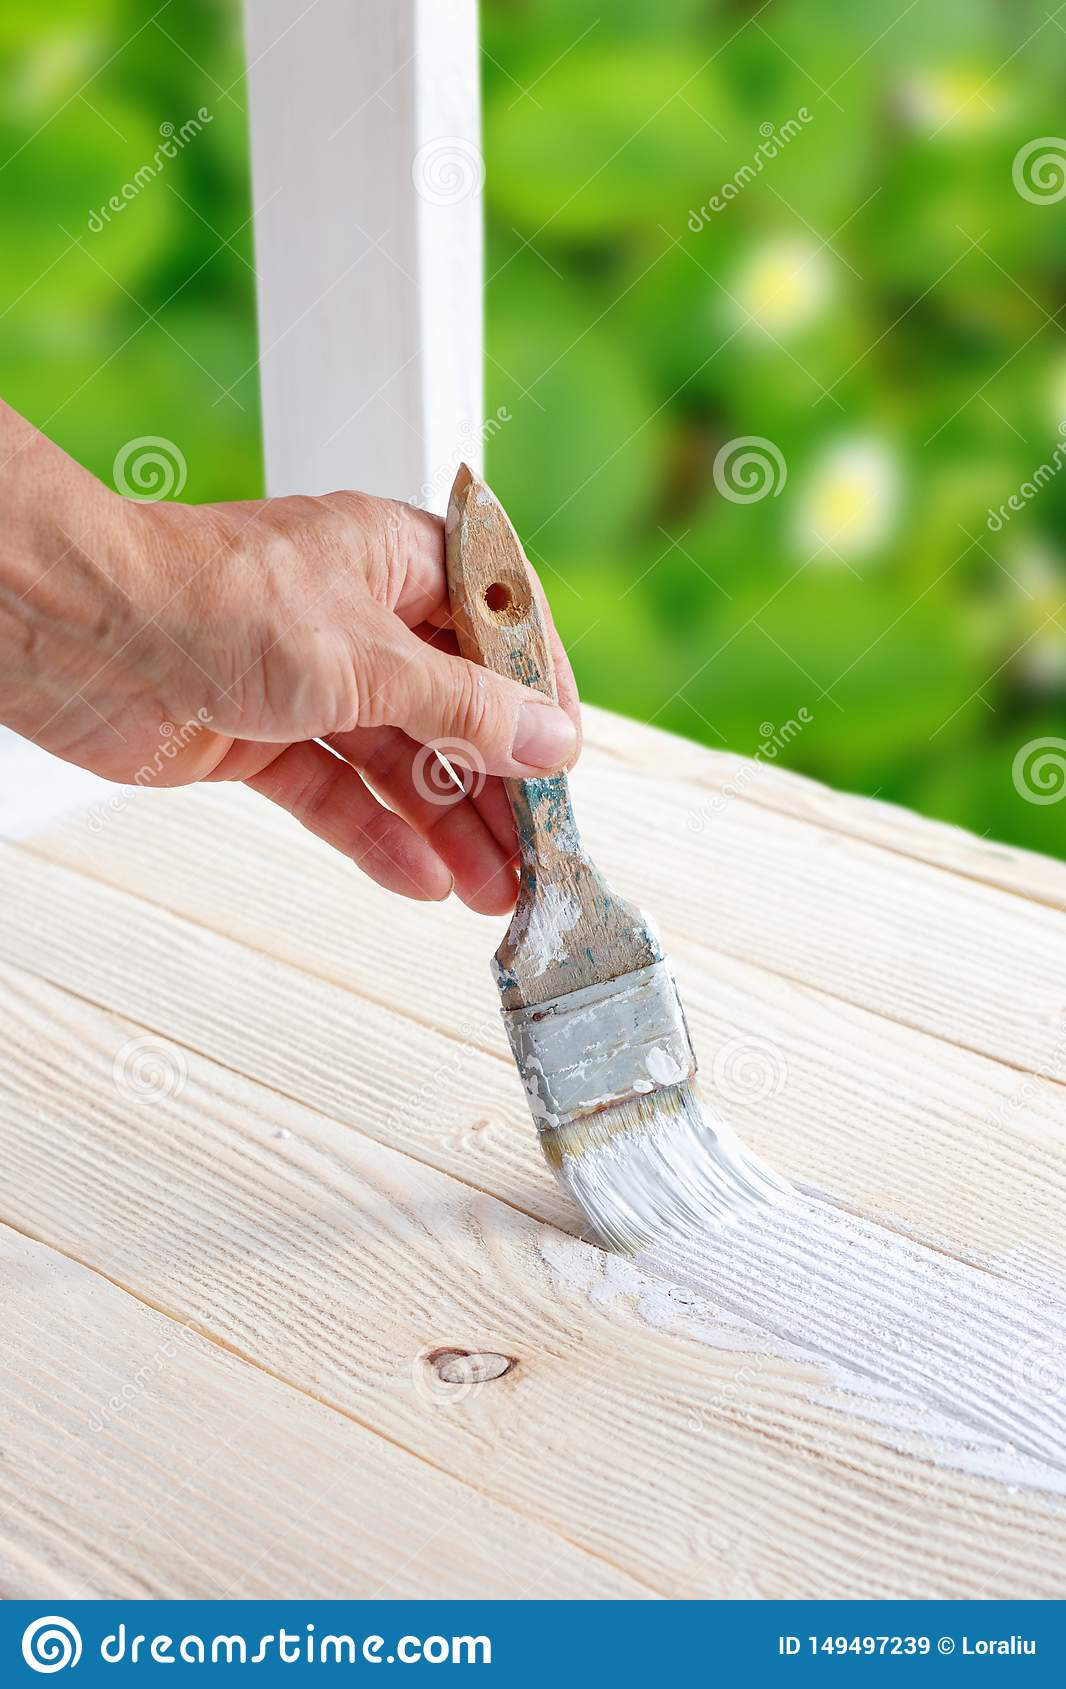 Worker Painting White Wooden Furniture Outdoor Stock Image Image Of Garden Emulsion 149497239